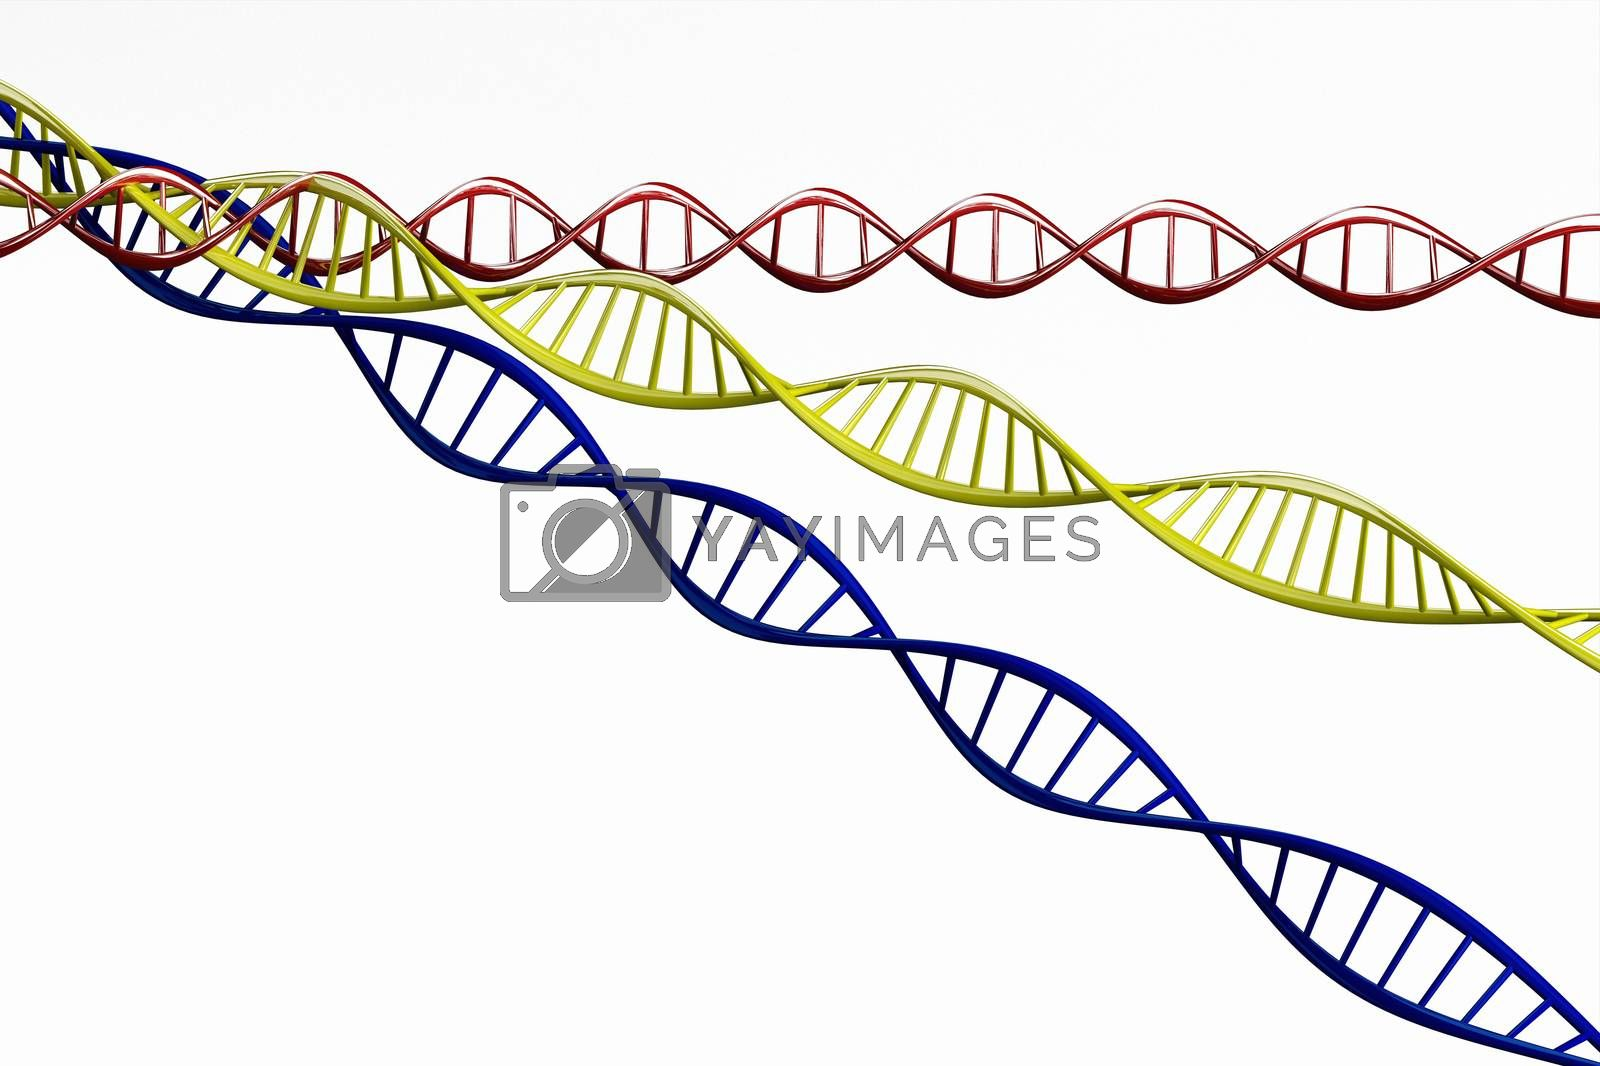 3d render ,Model of twisted DNA chain isolated on white background High resolution.